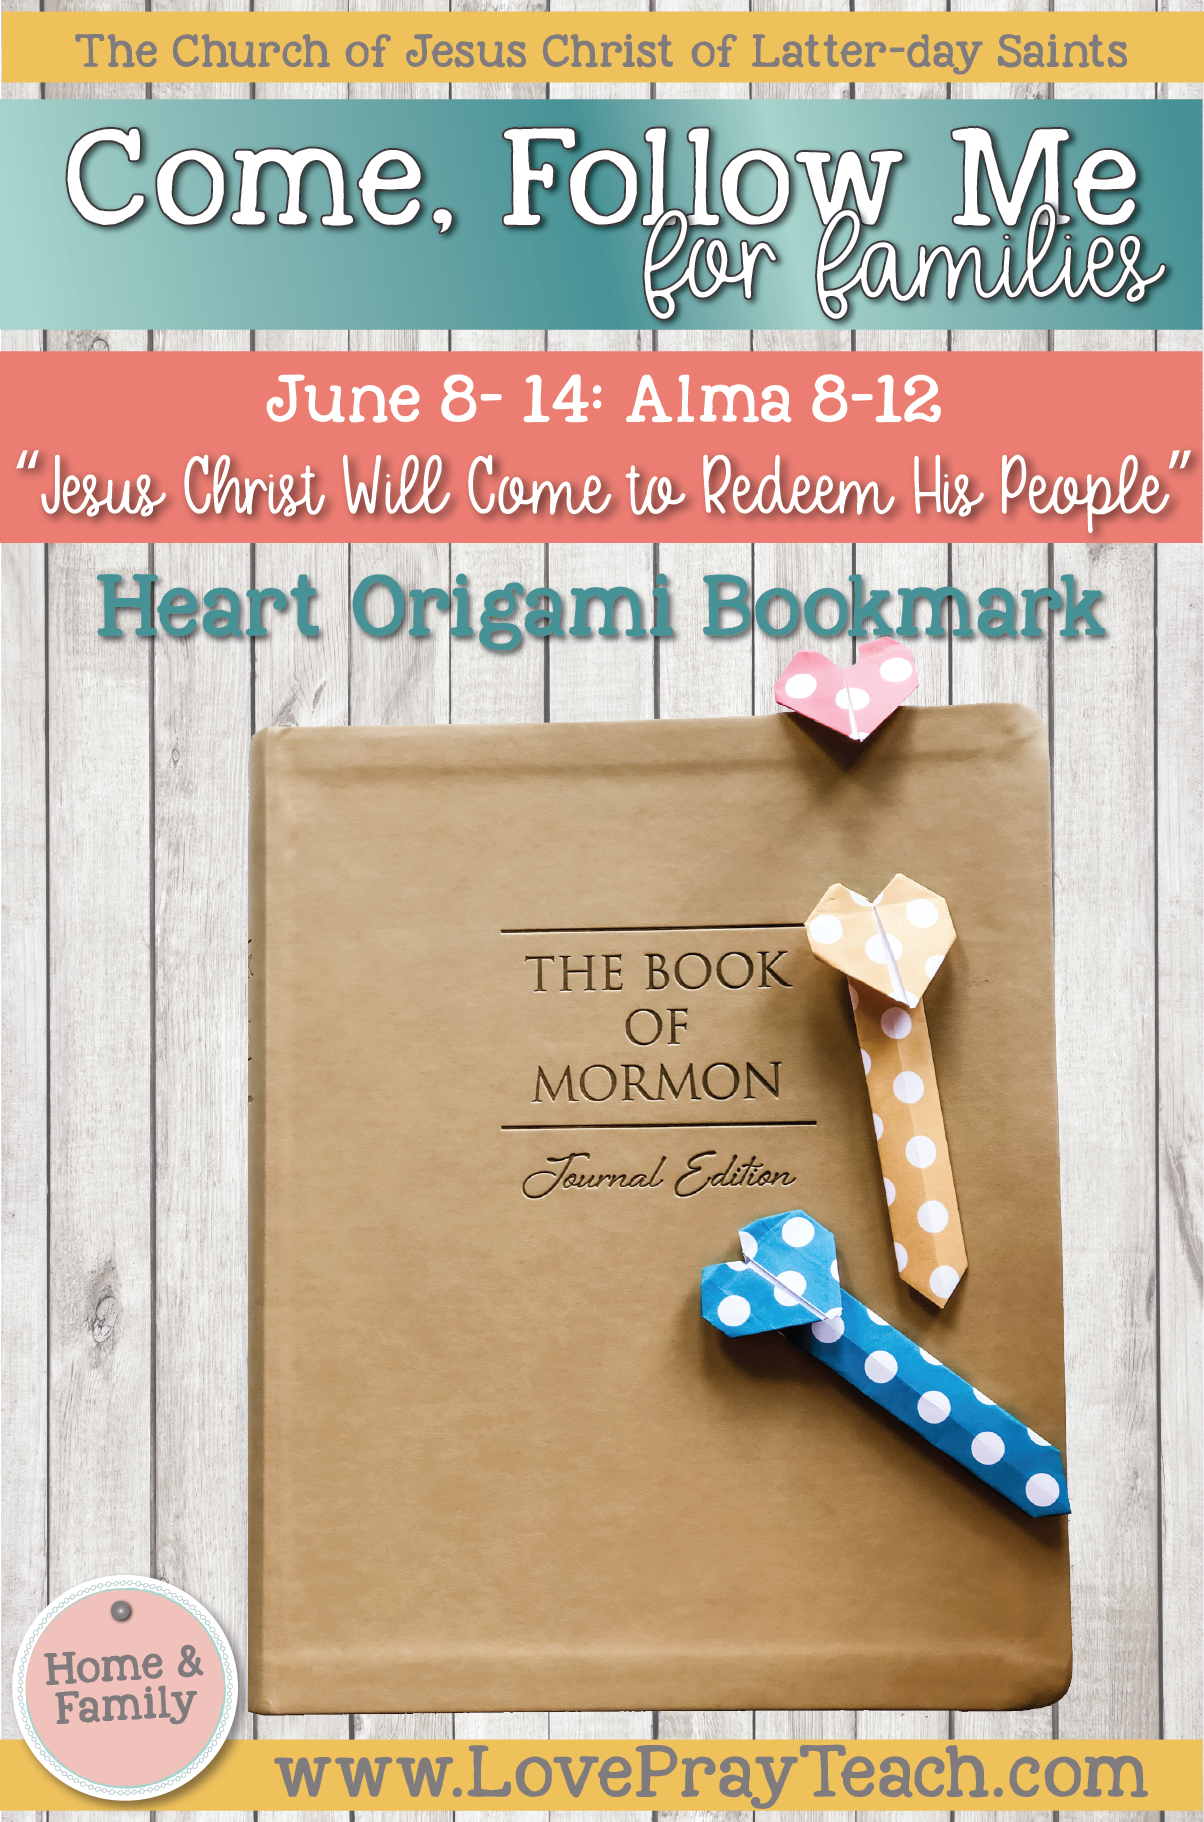 """Come, Follow Me—For Individuals and Families: Book of Mormon 2020 -June Week 2 -June 8– 14 Alma 8-12""""Jesus Christ Will Come to Redeem His People"""""""